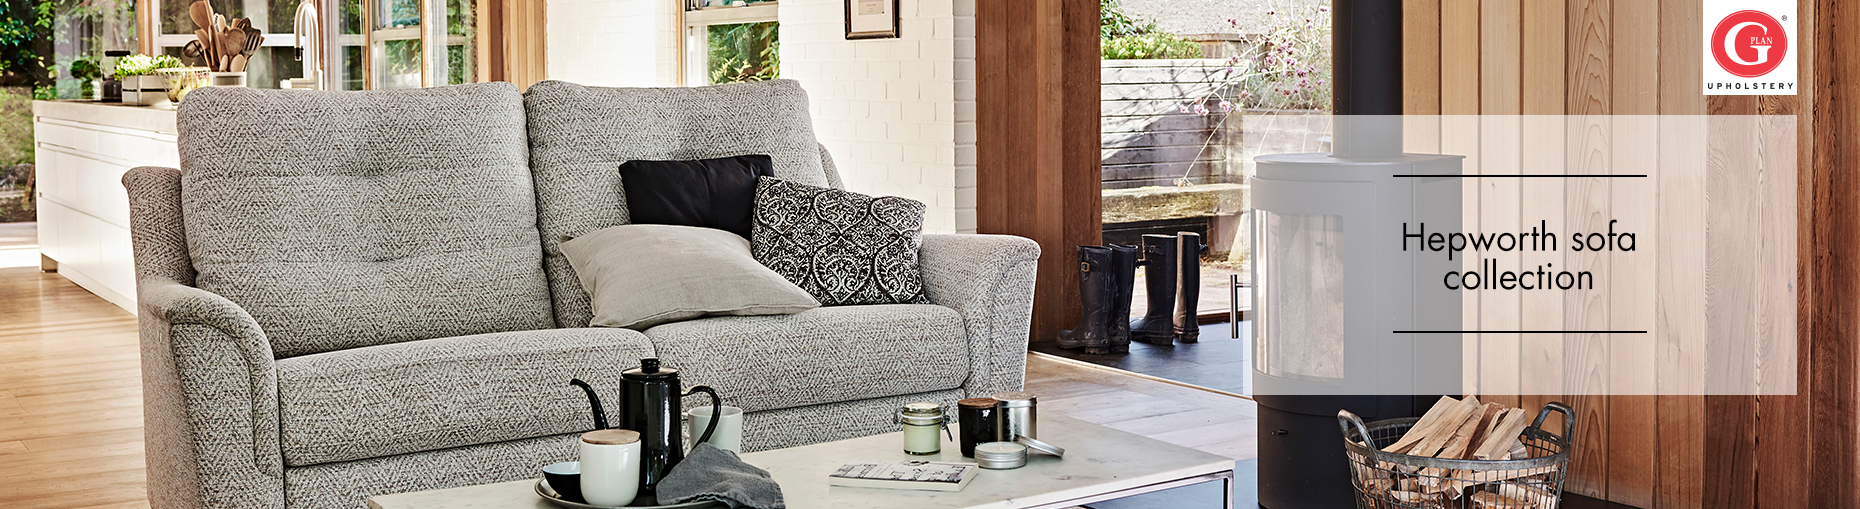 Hepworth fabric sofa collecion from G Plan Upholstery at Forrest Furnishing